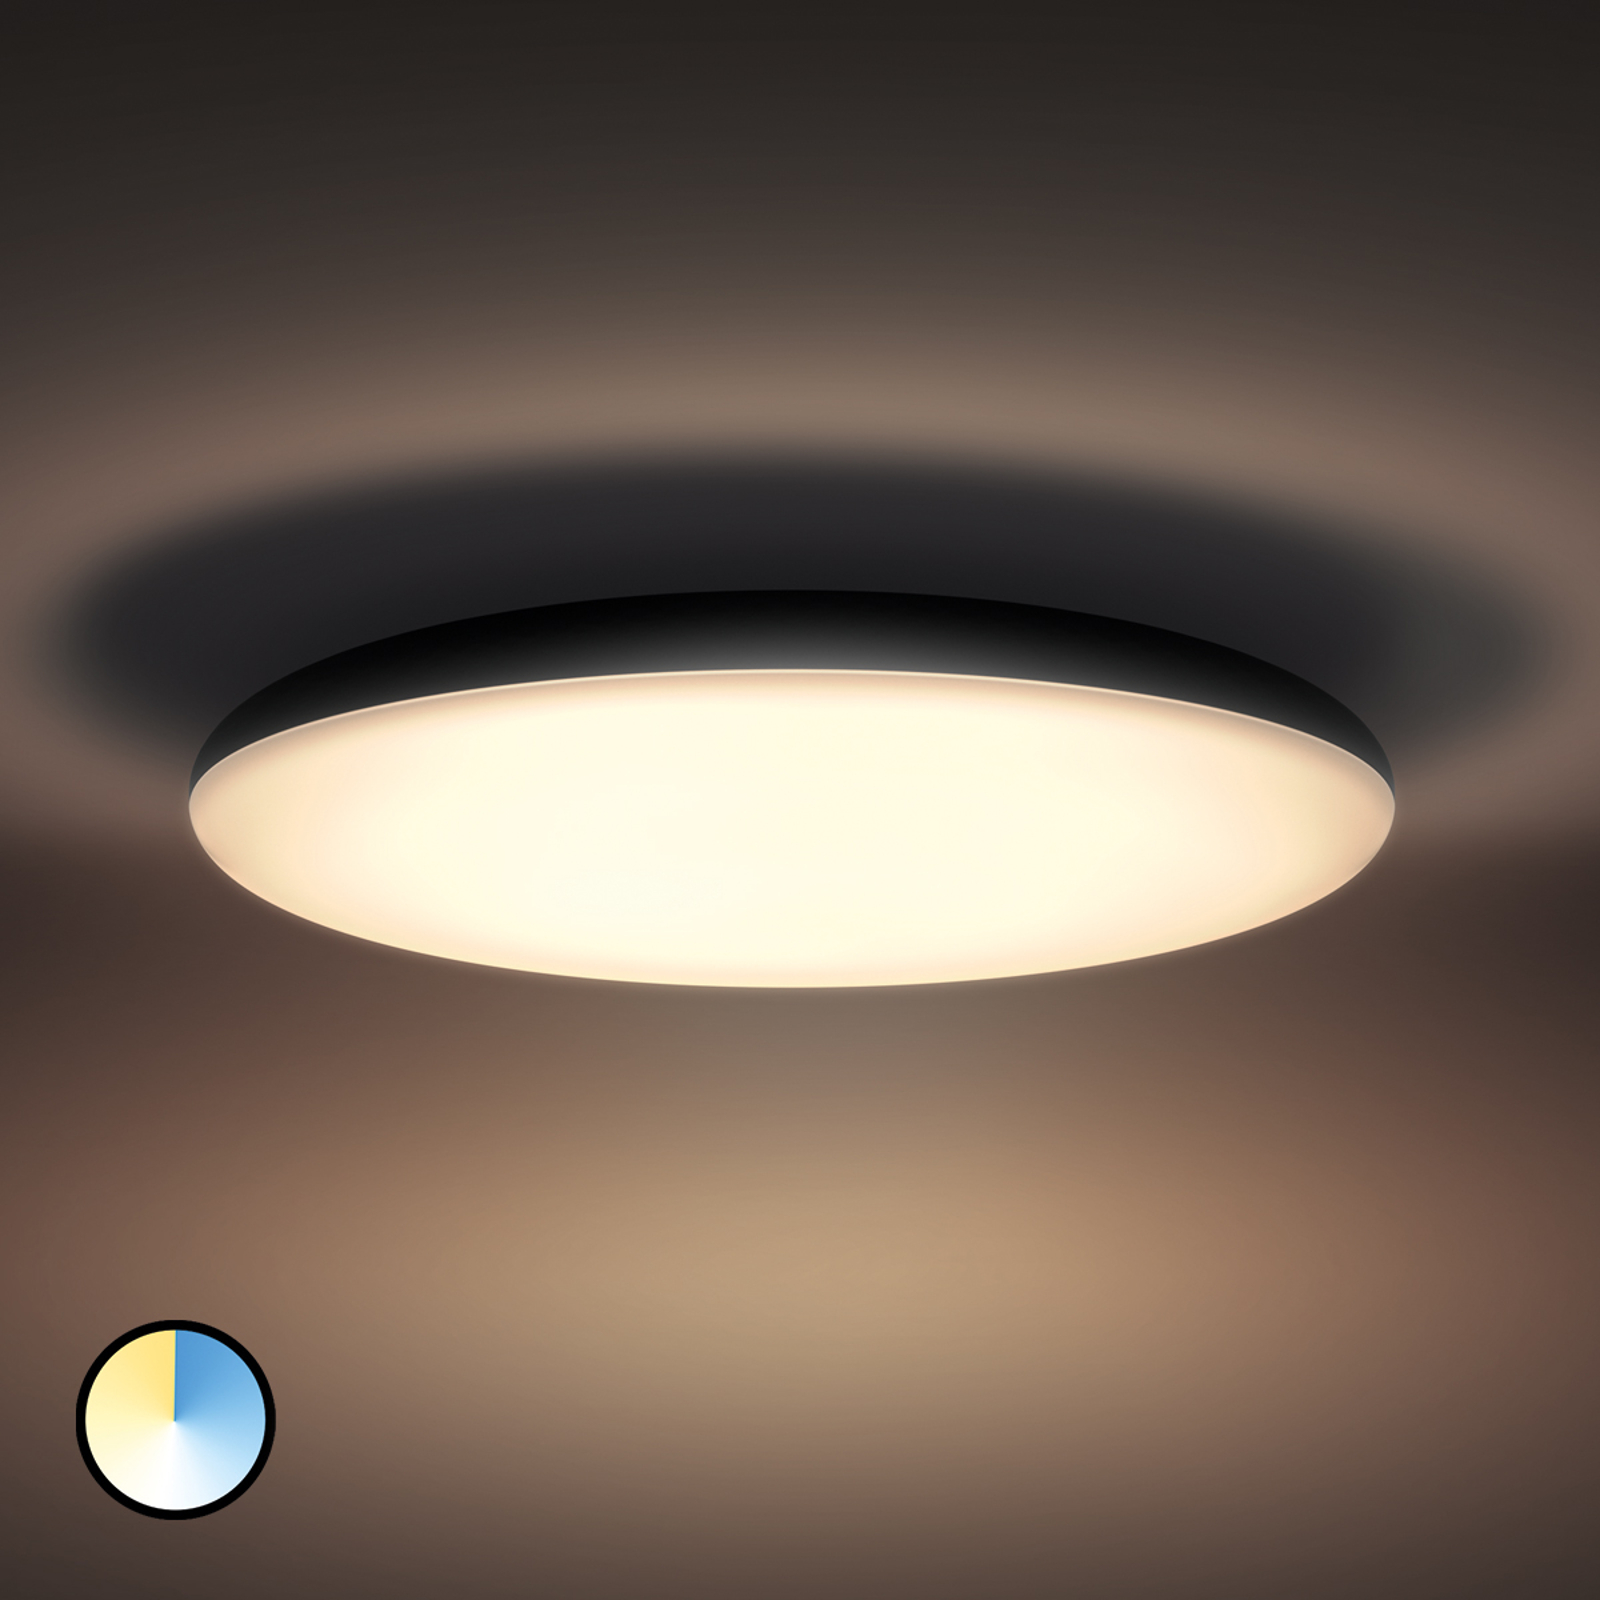 Philips Hue White Ambiance Cher taklampe